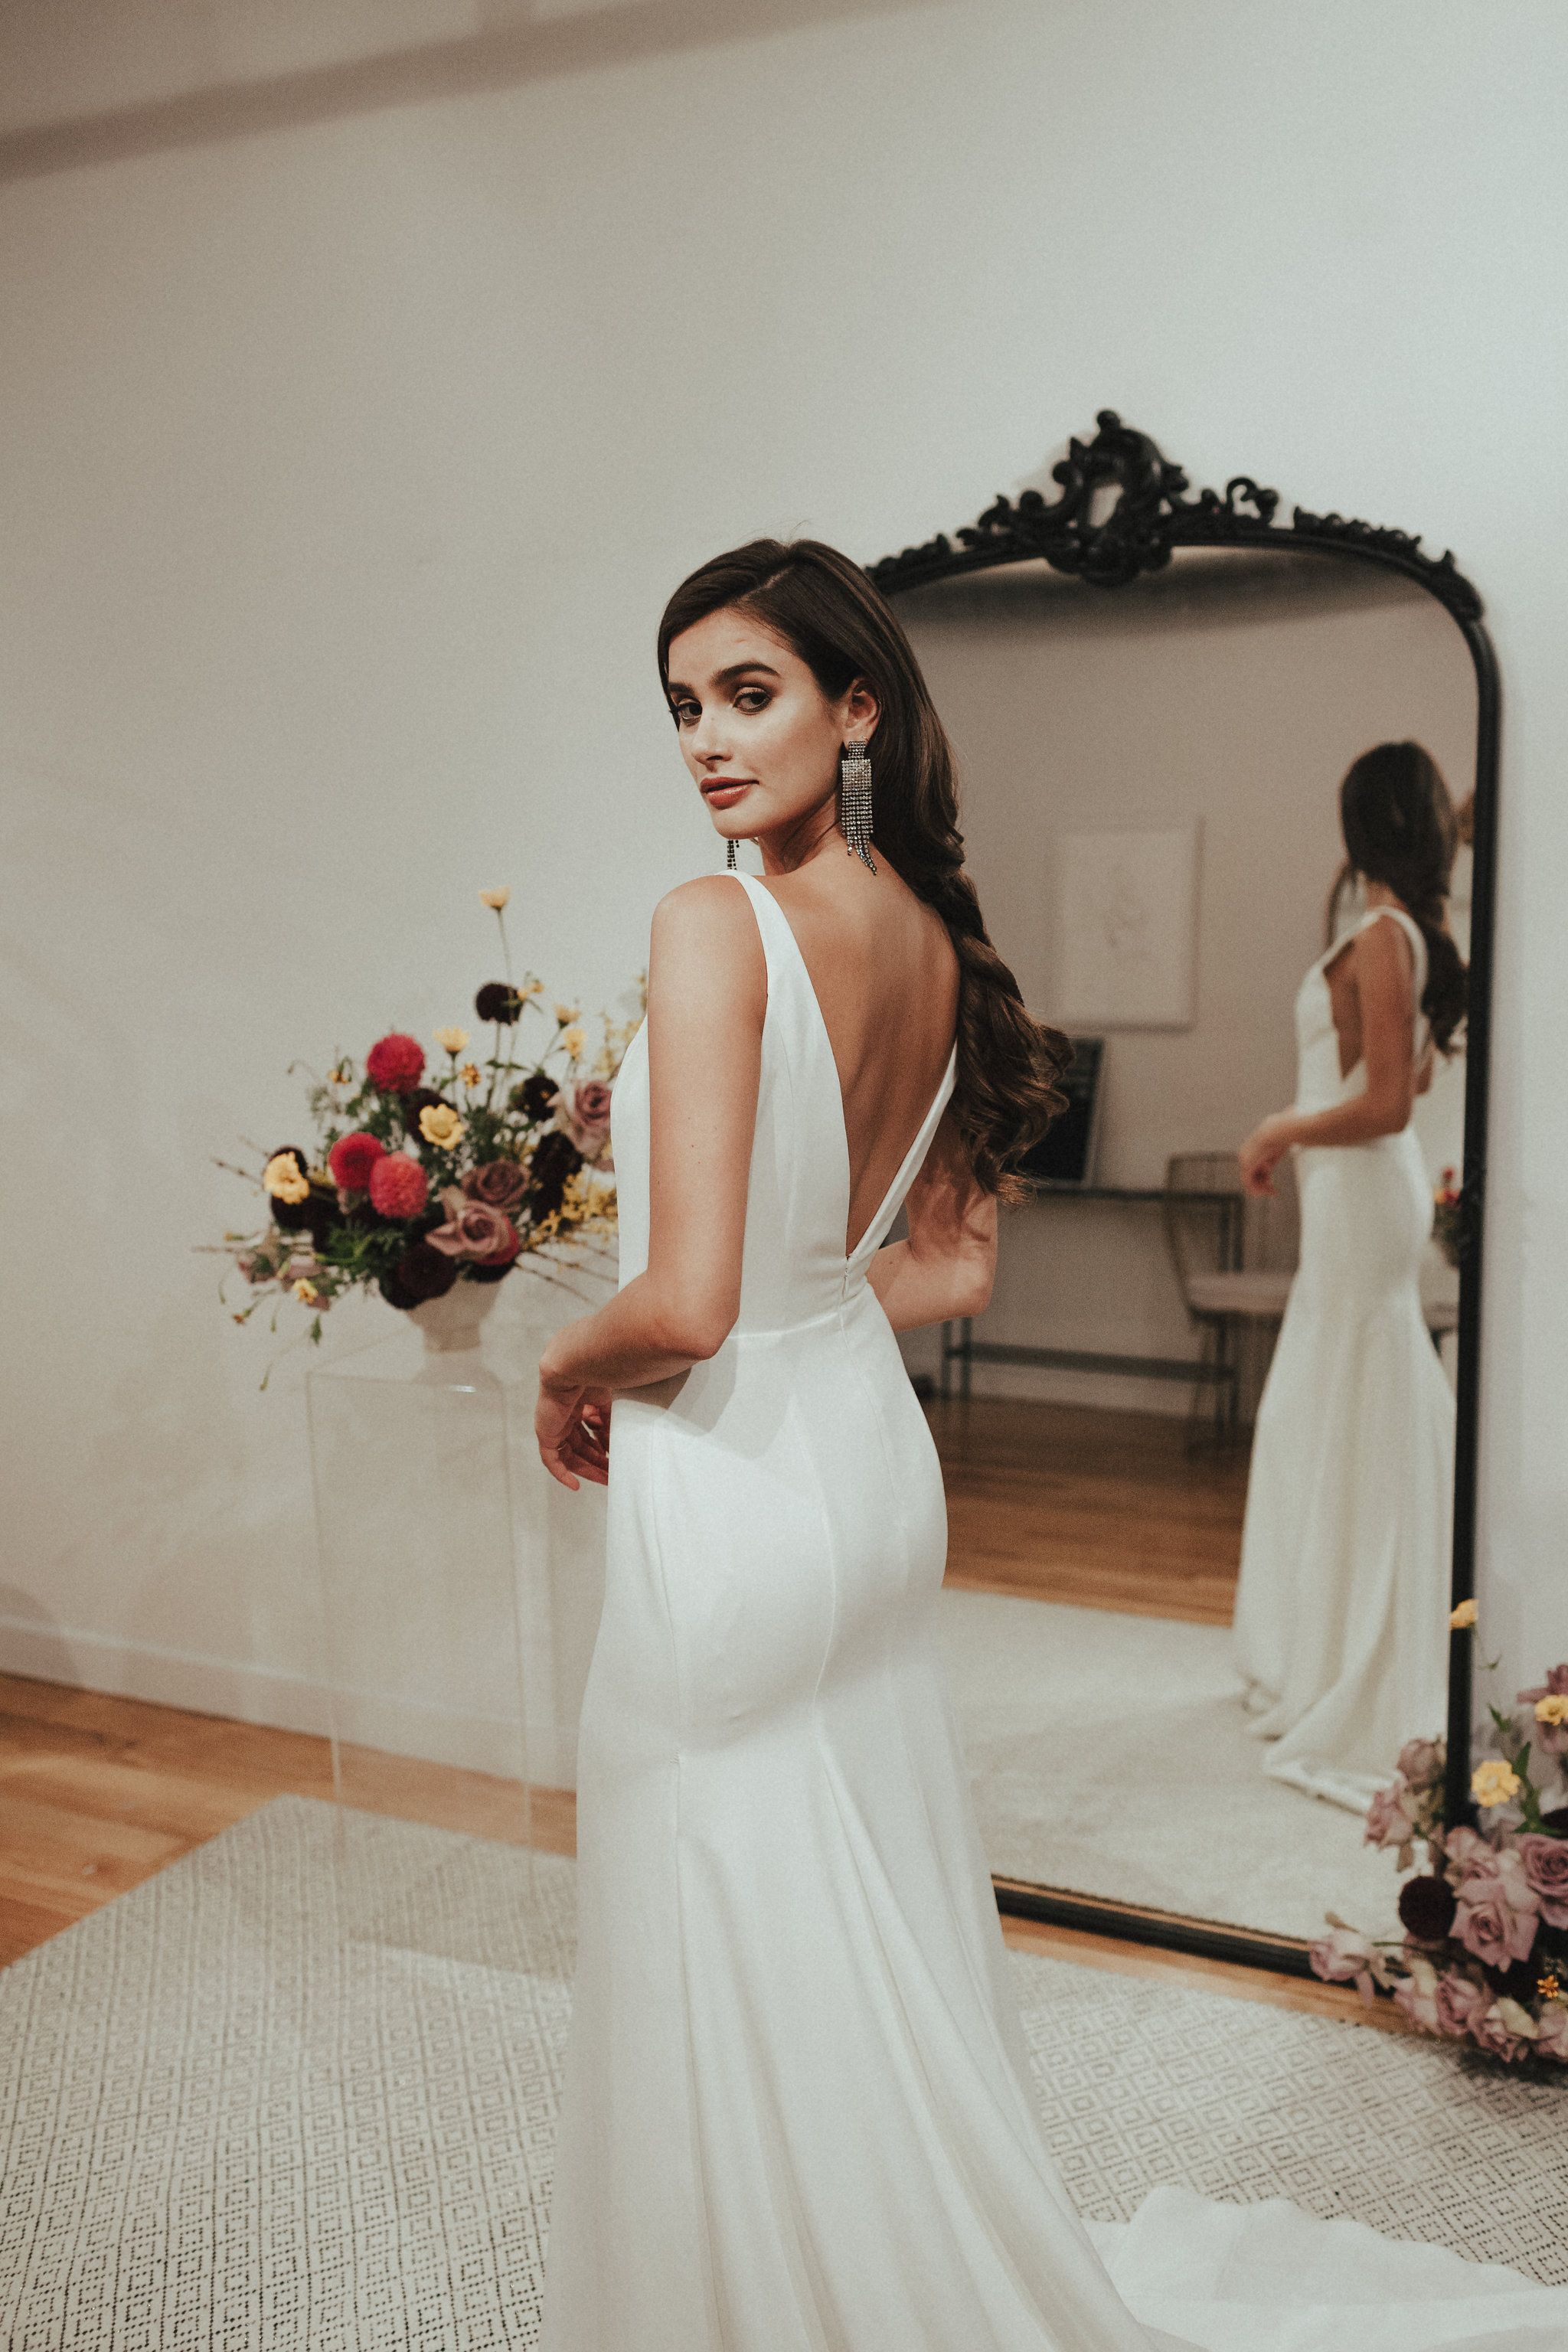 c9bffa56e2a3a Belmont Gown. Wedding dress | Sarah Seven Bridal Spring Bride | Available  at Everthine Bride | Madison CT | Burlington VT | Sarah SEVEN Wedding Dress  | Non ...